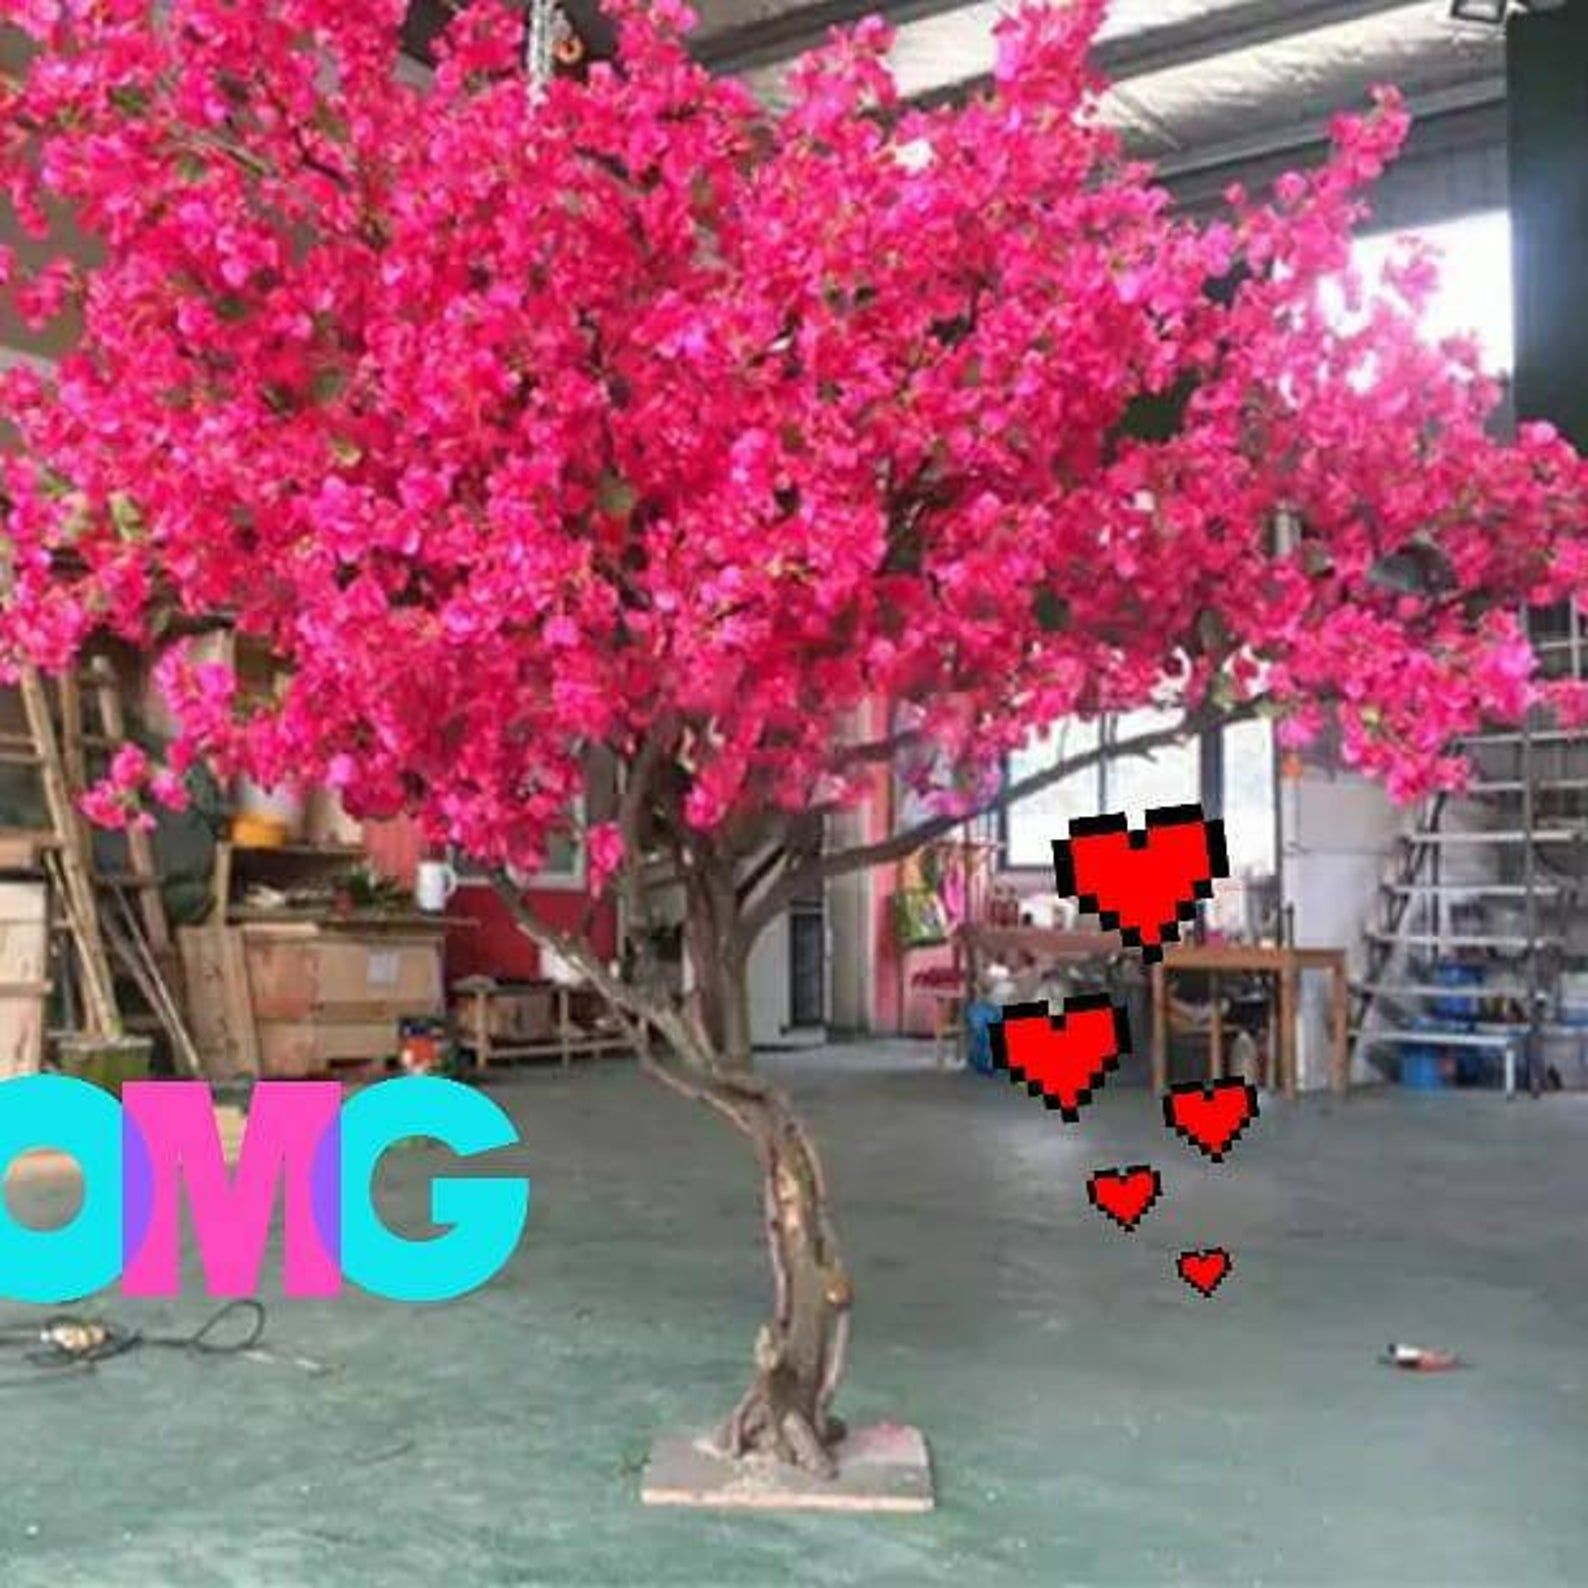 Artificial Faux Cherry Blossom Trees Peony Rose Arches Etsy Cherry Blossom Tree Blossom Trees Wedding Tree Decorations